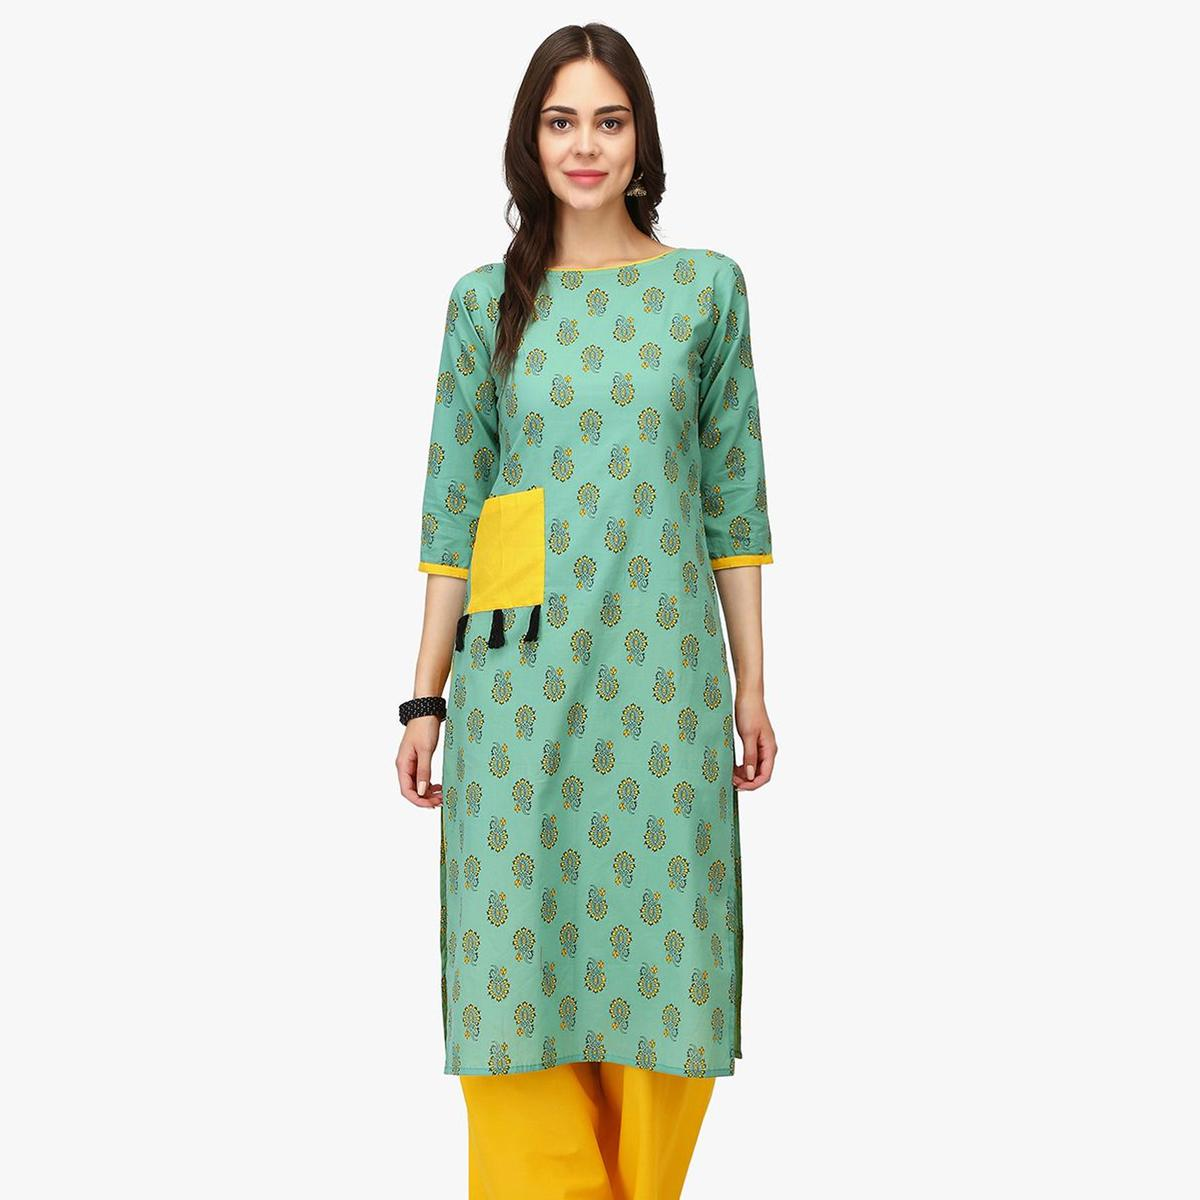 Impressive Mint Green Colored Casual Wear Floral Printed Calf Length Cambric Cotton Straight Kurti